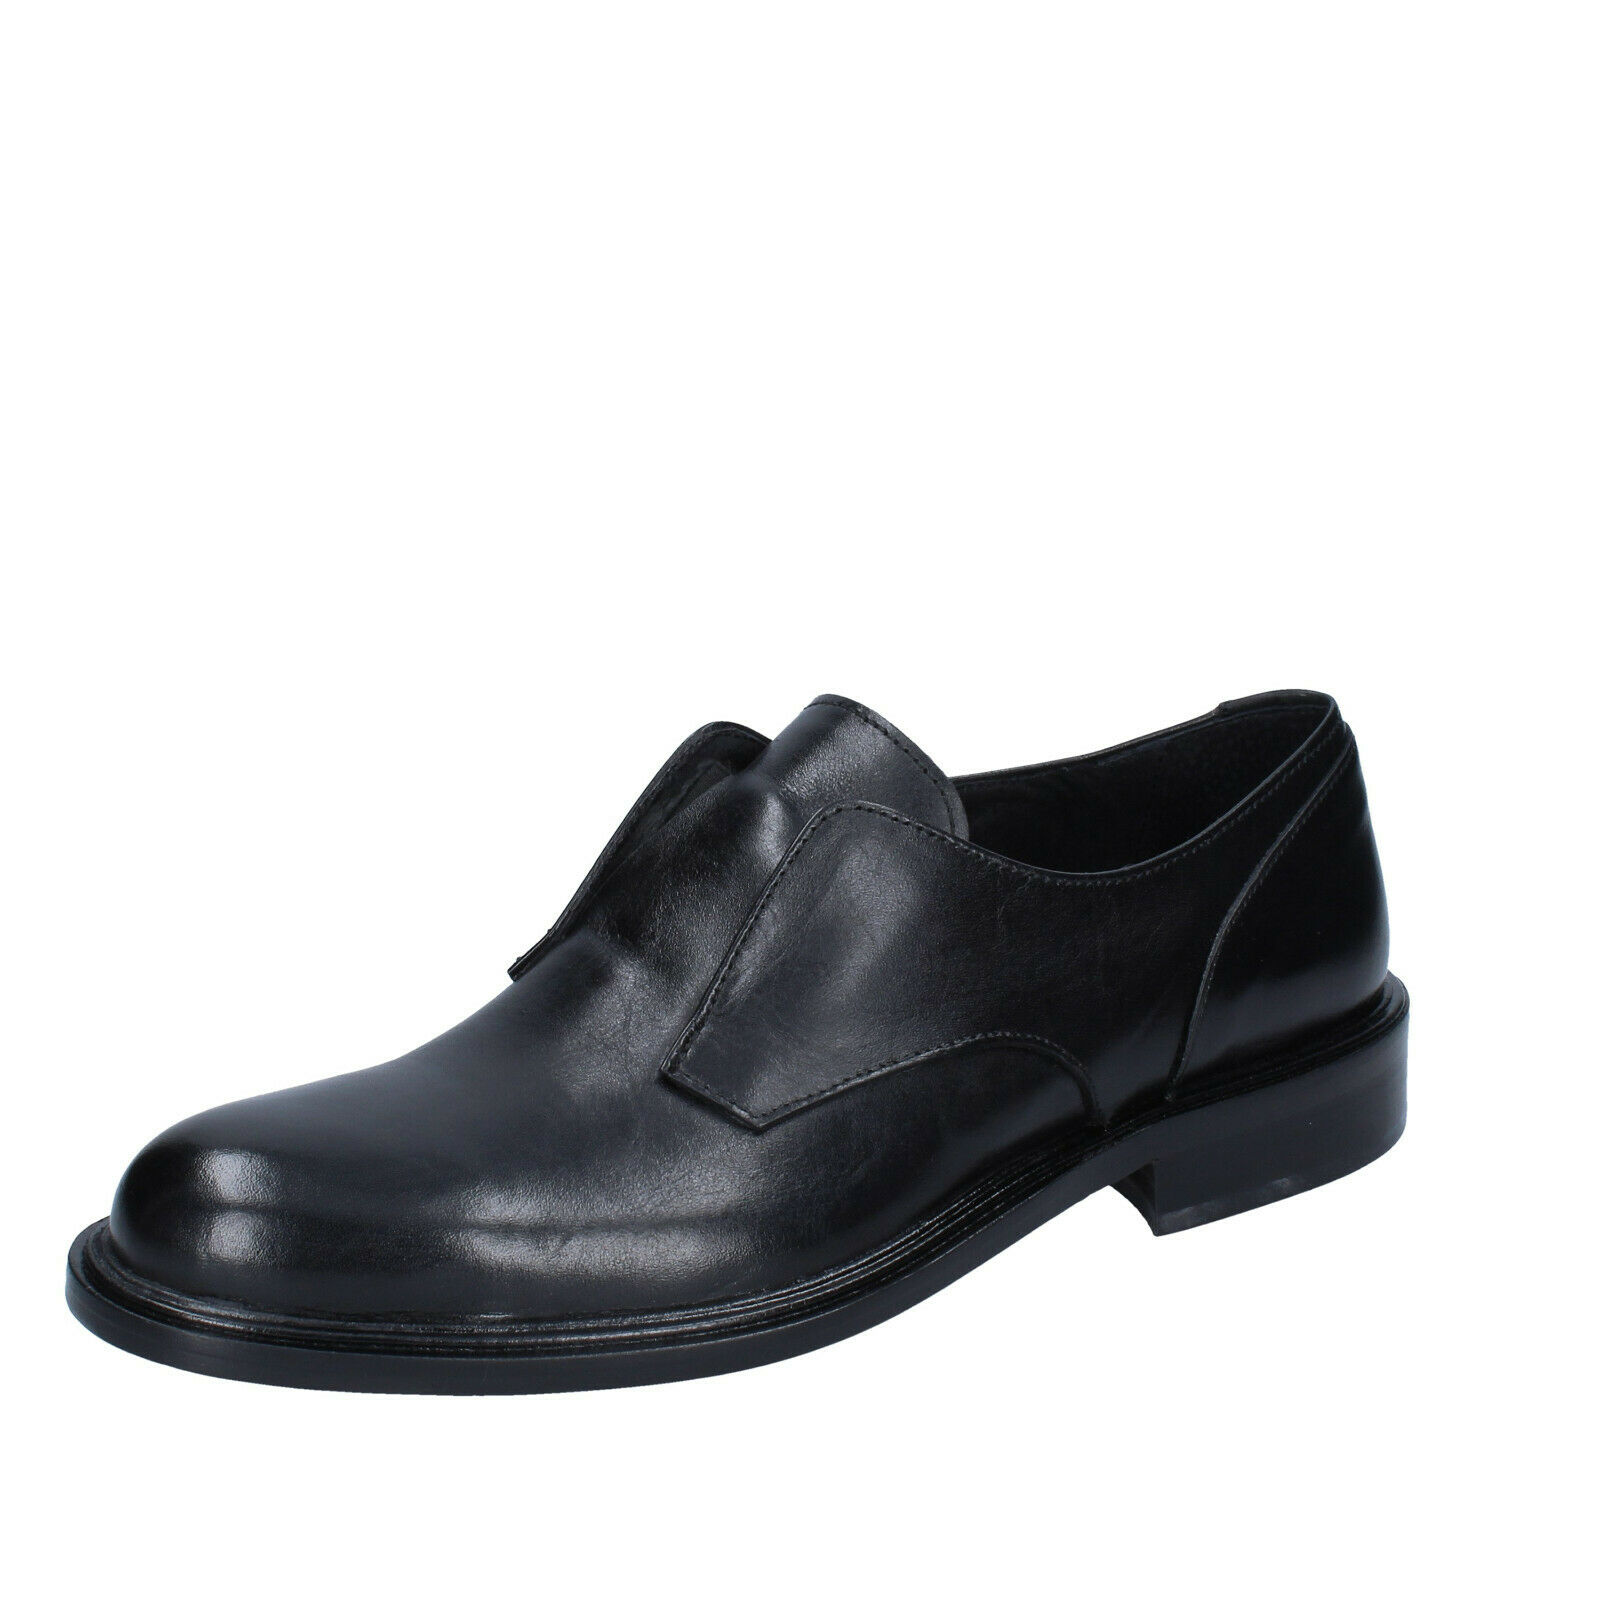 Mens shoes BARCA 5 (EU 39) elegant black leather BS609-39